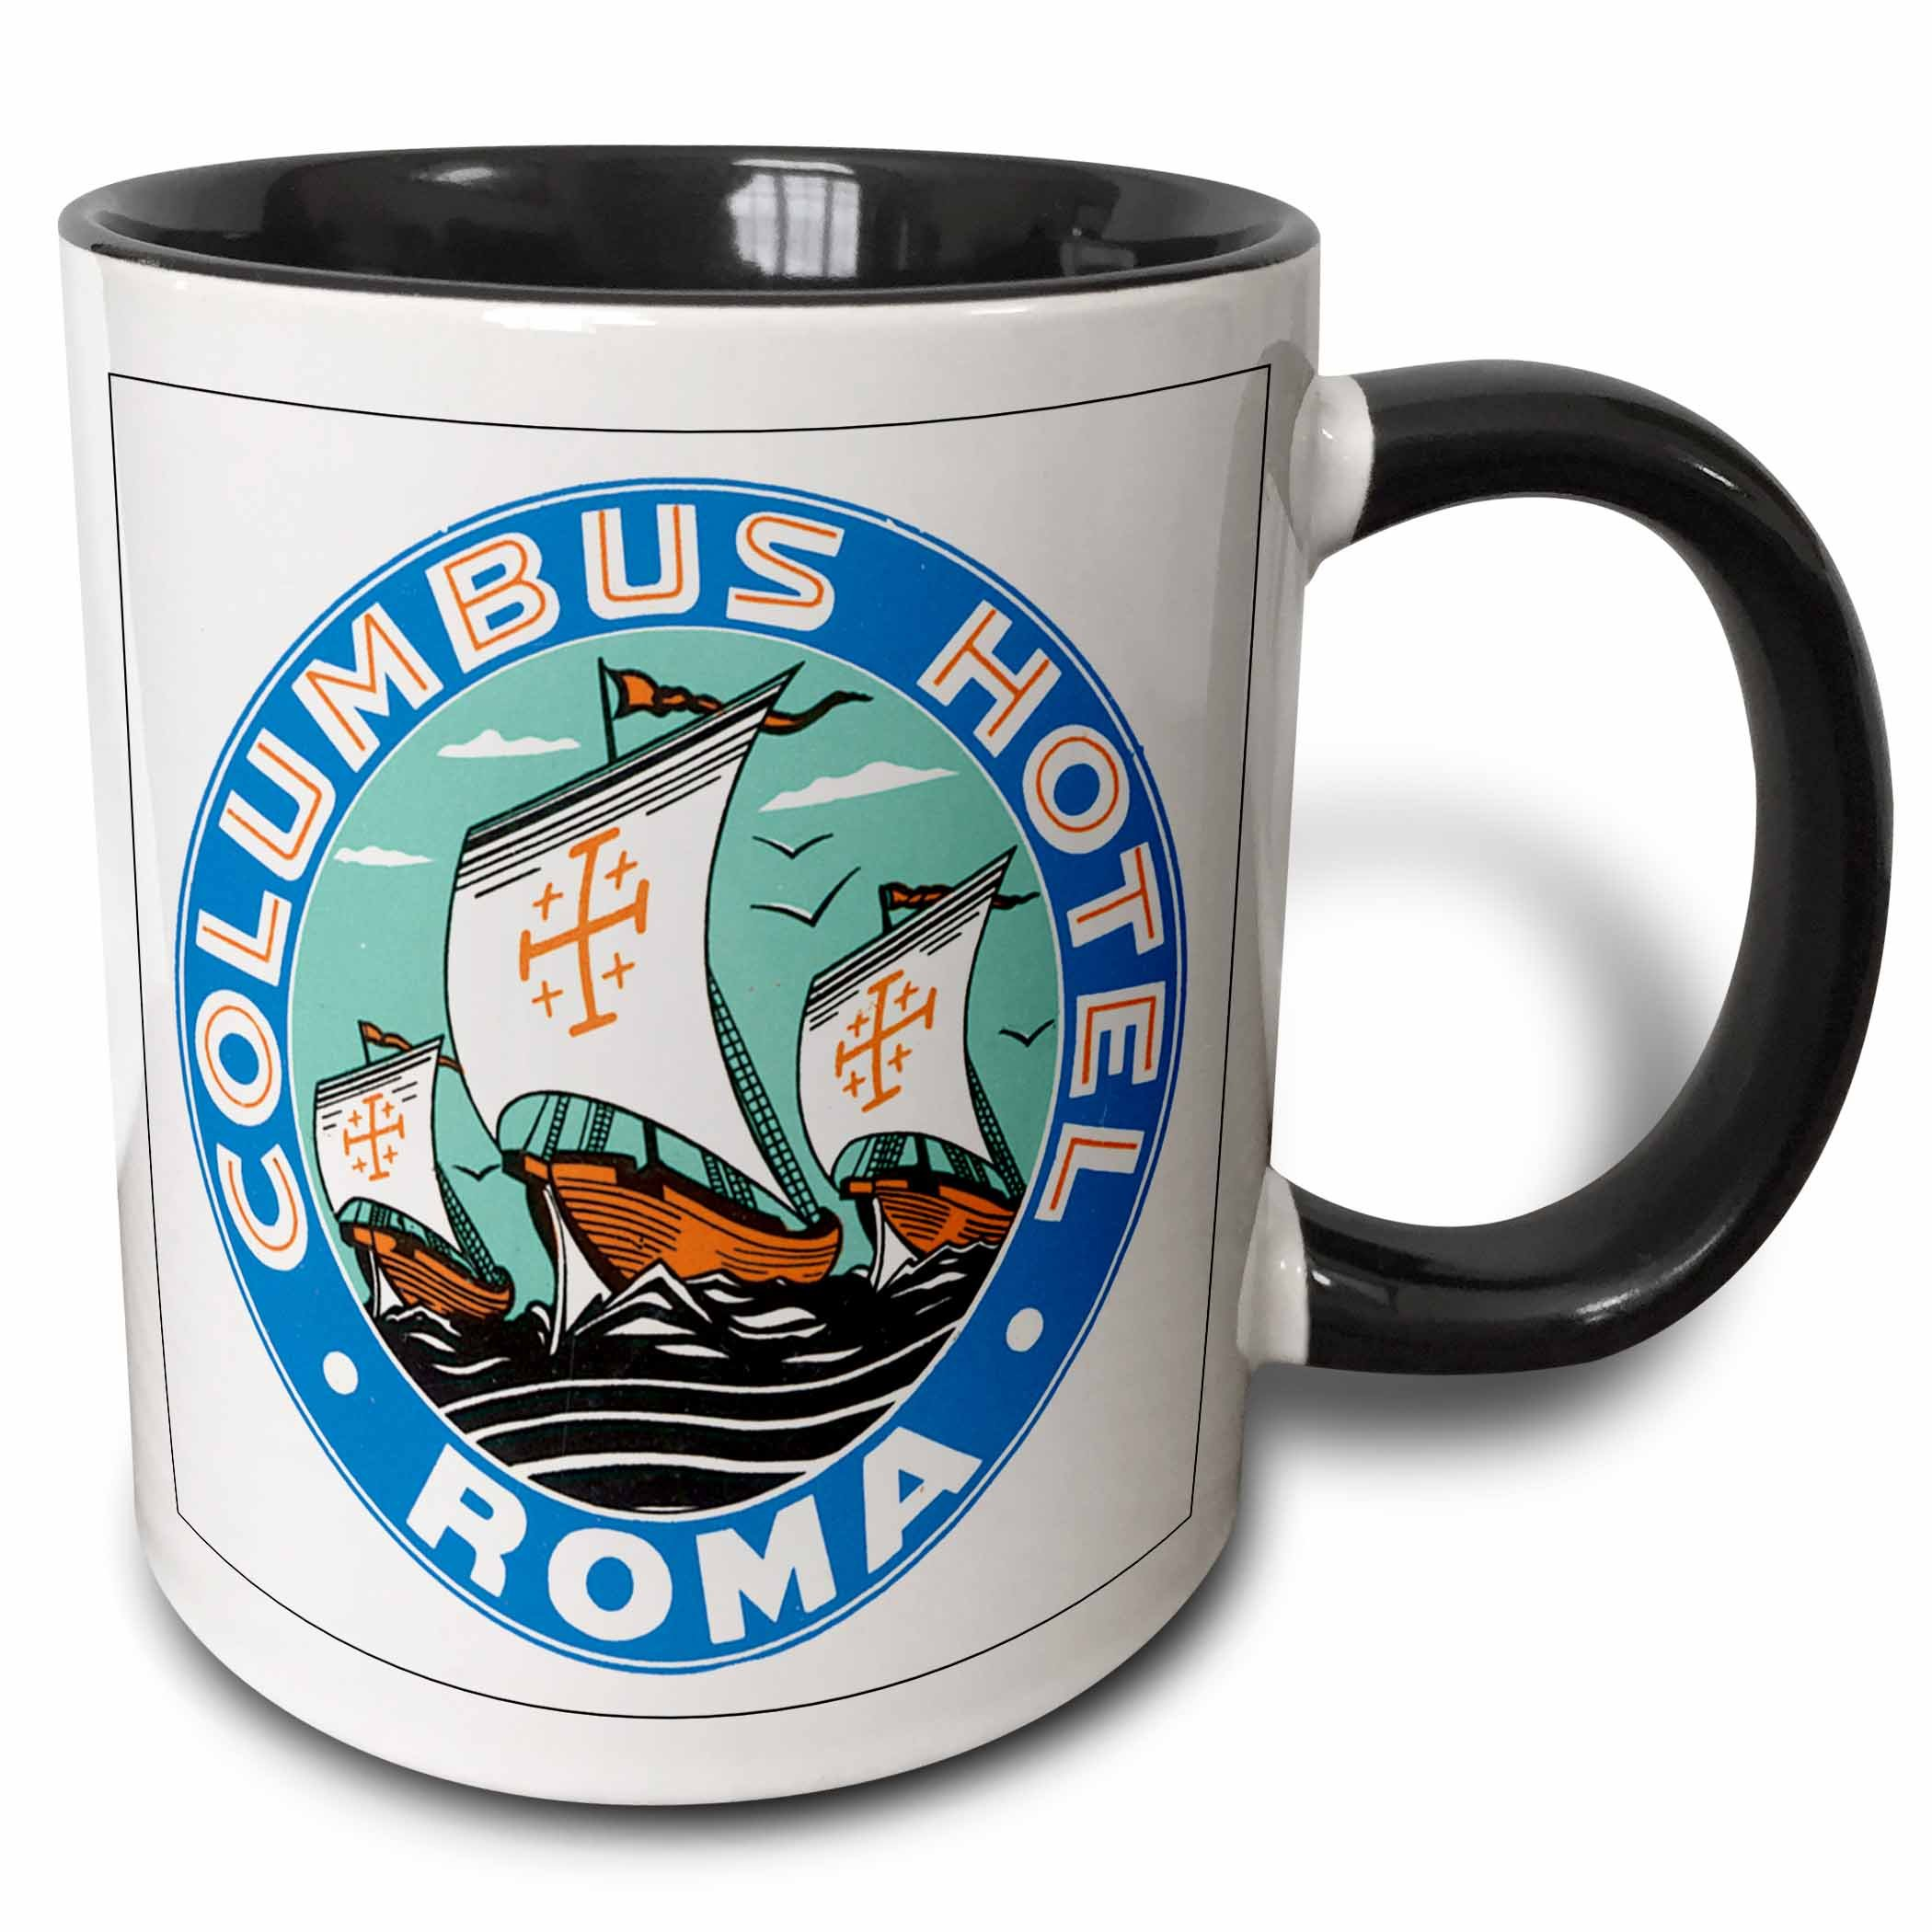 3dRose mug_169848_4 Columbus Hotel Roma with Columbus Sailing Ships Round Label - Two Tone Black Mug, 11oz